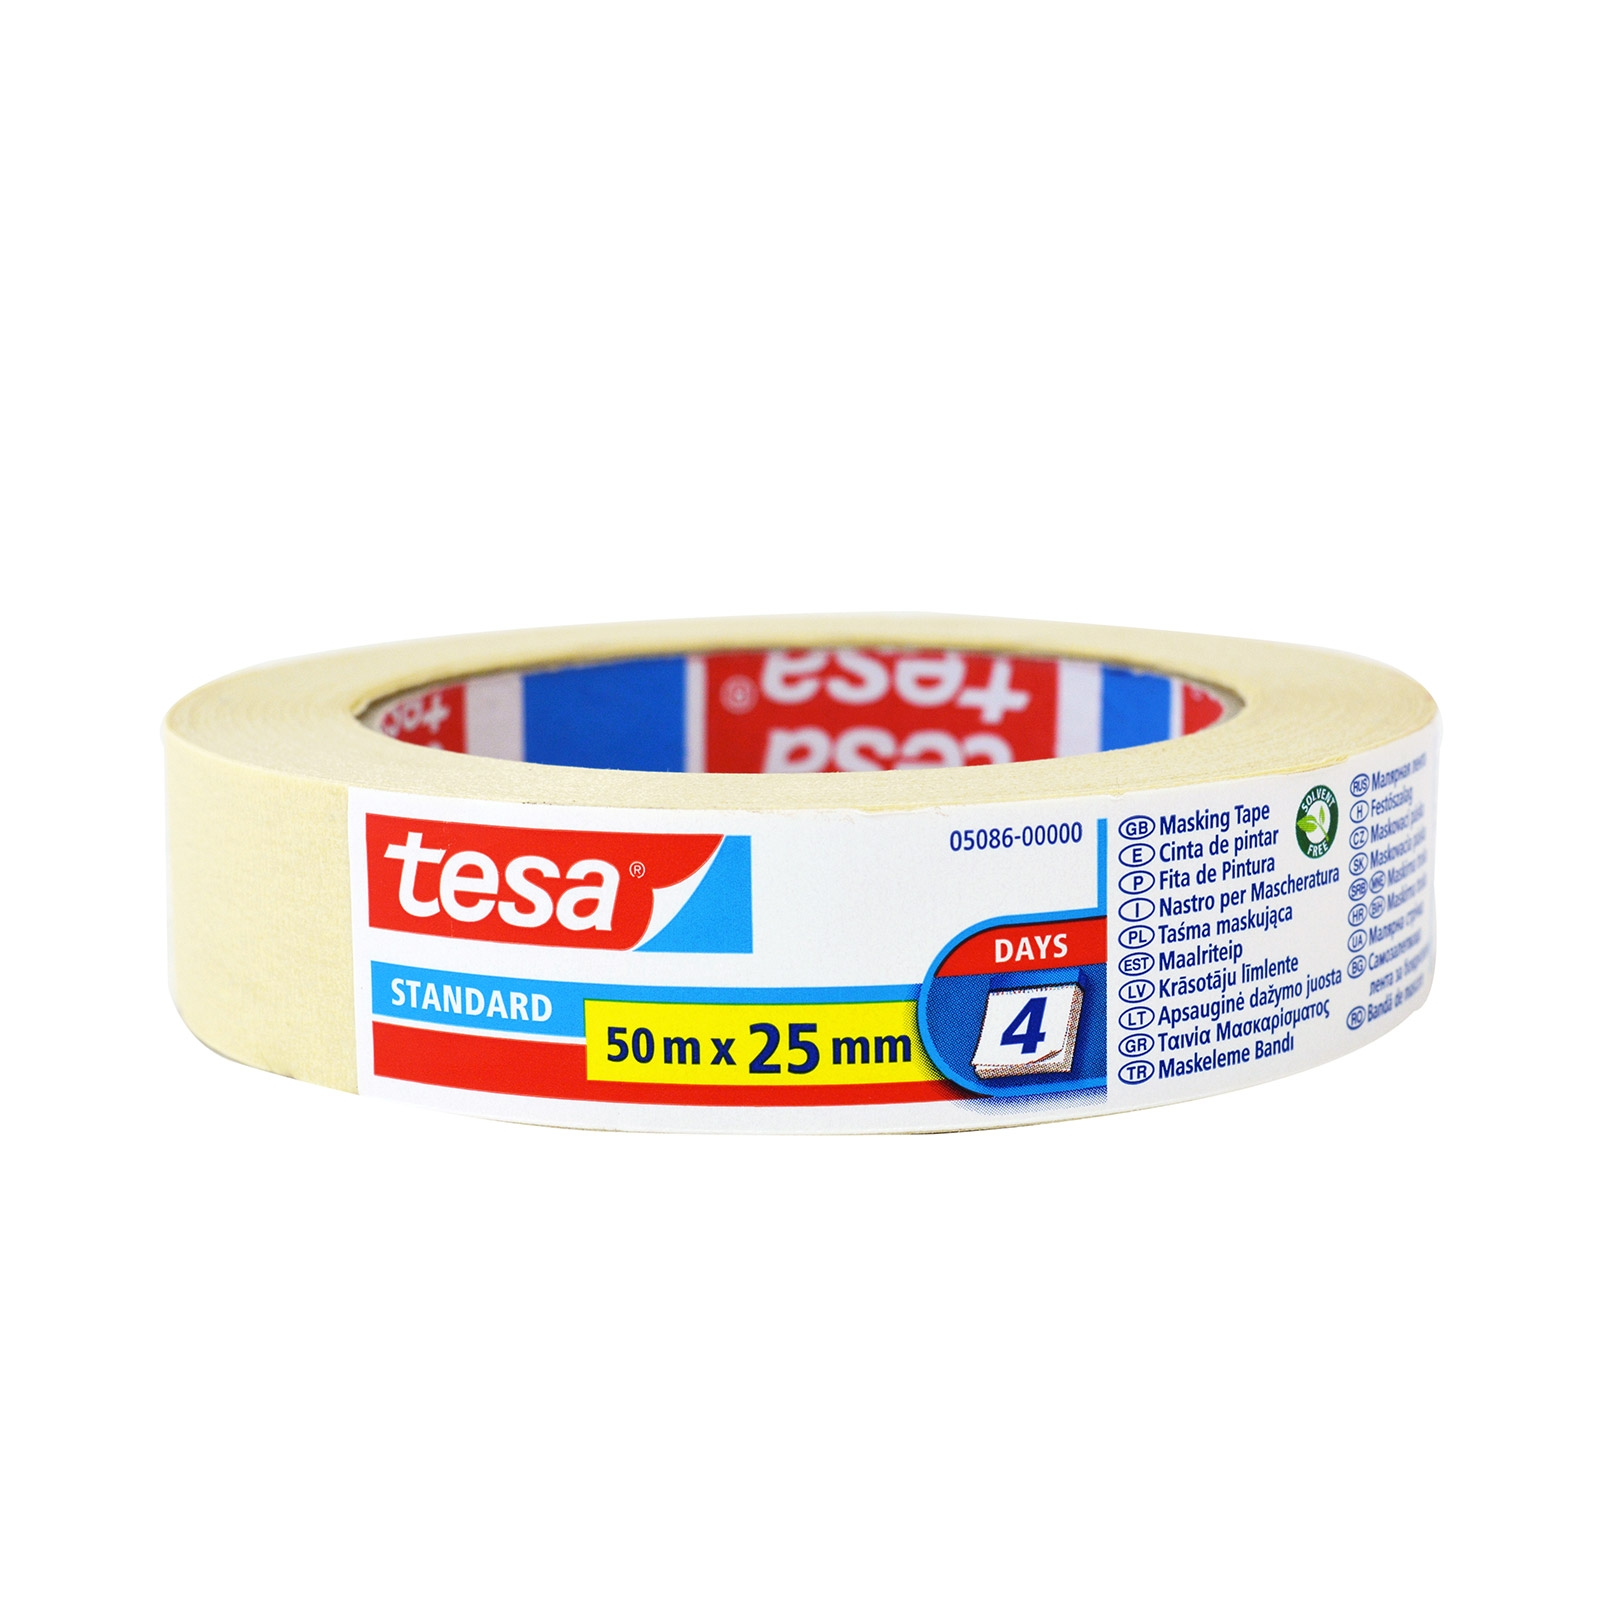 TESA MASKING TAPE 50MX25MM